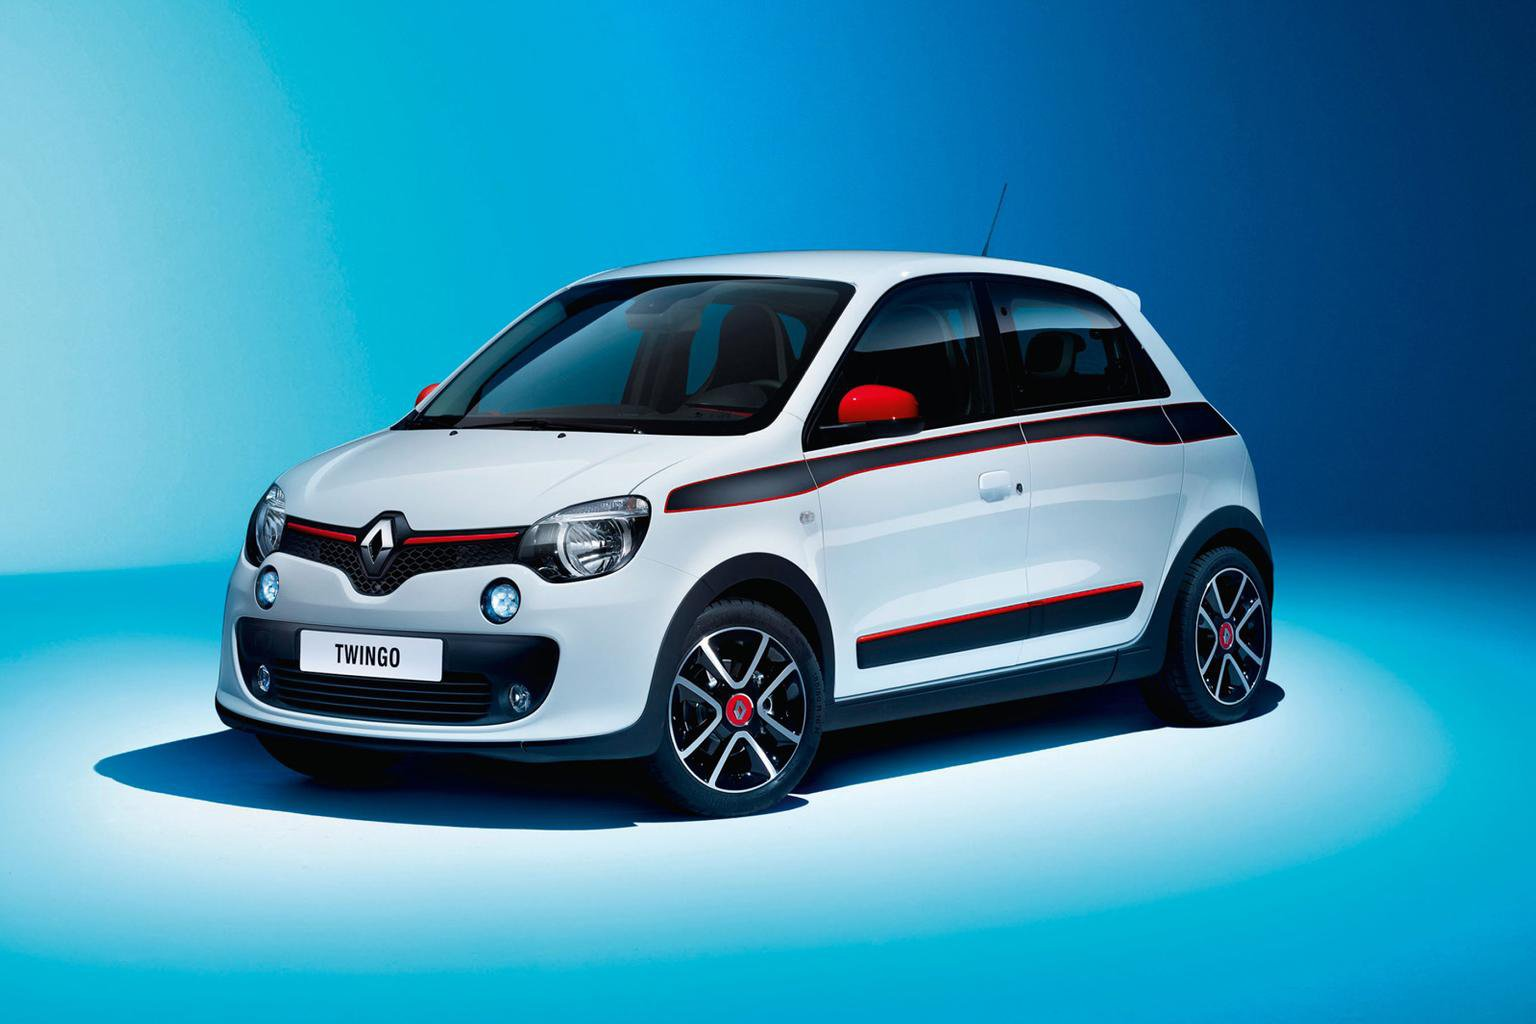 2014 Renault Twingo rivals - the cars it has to beat